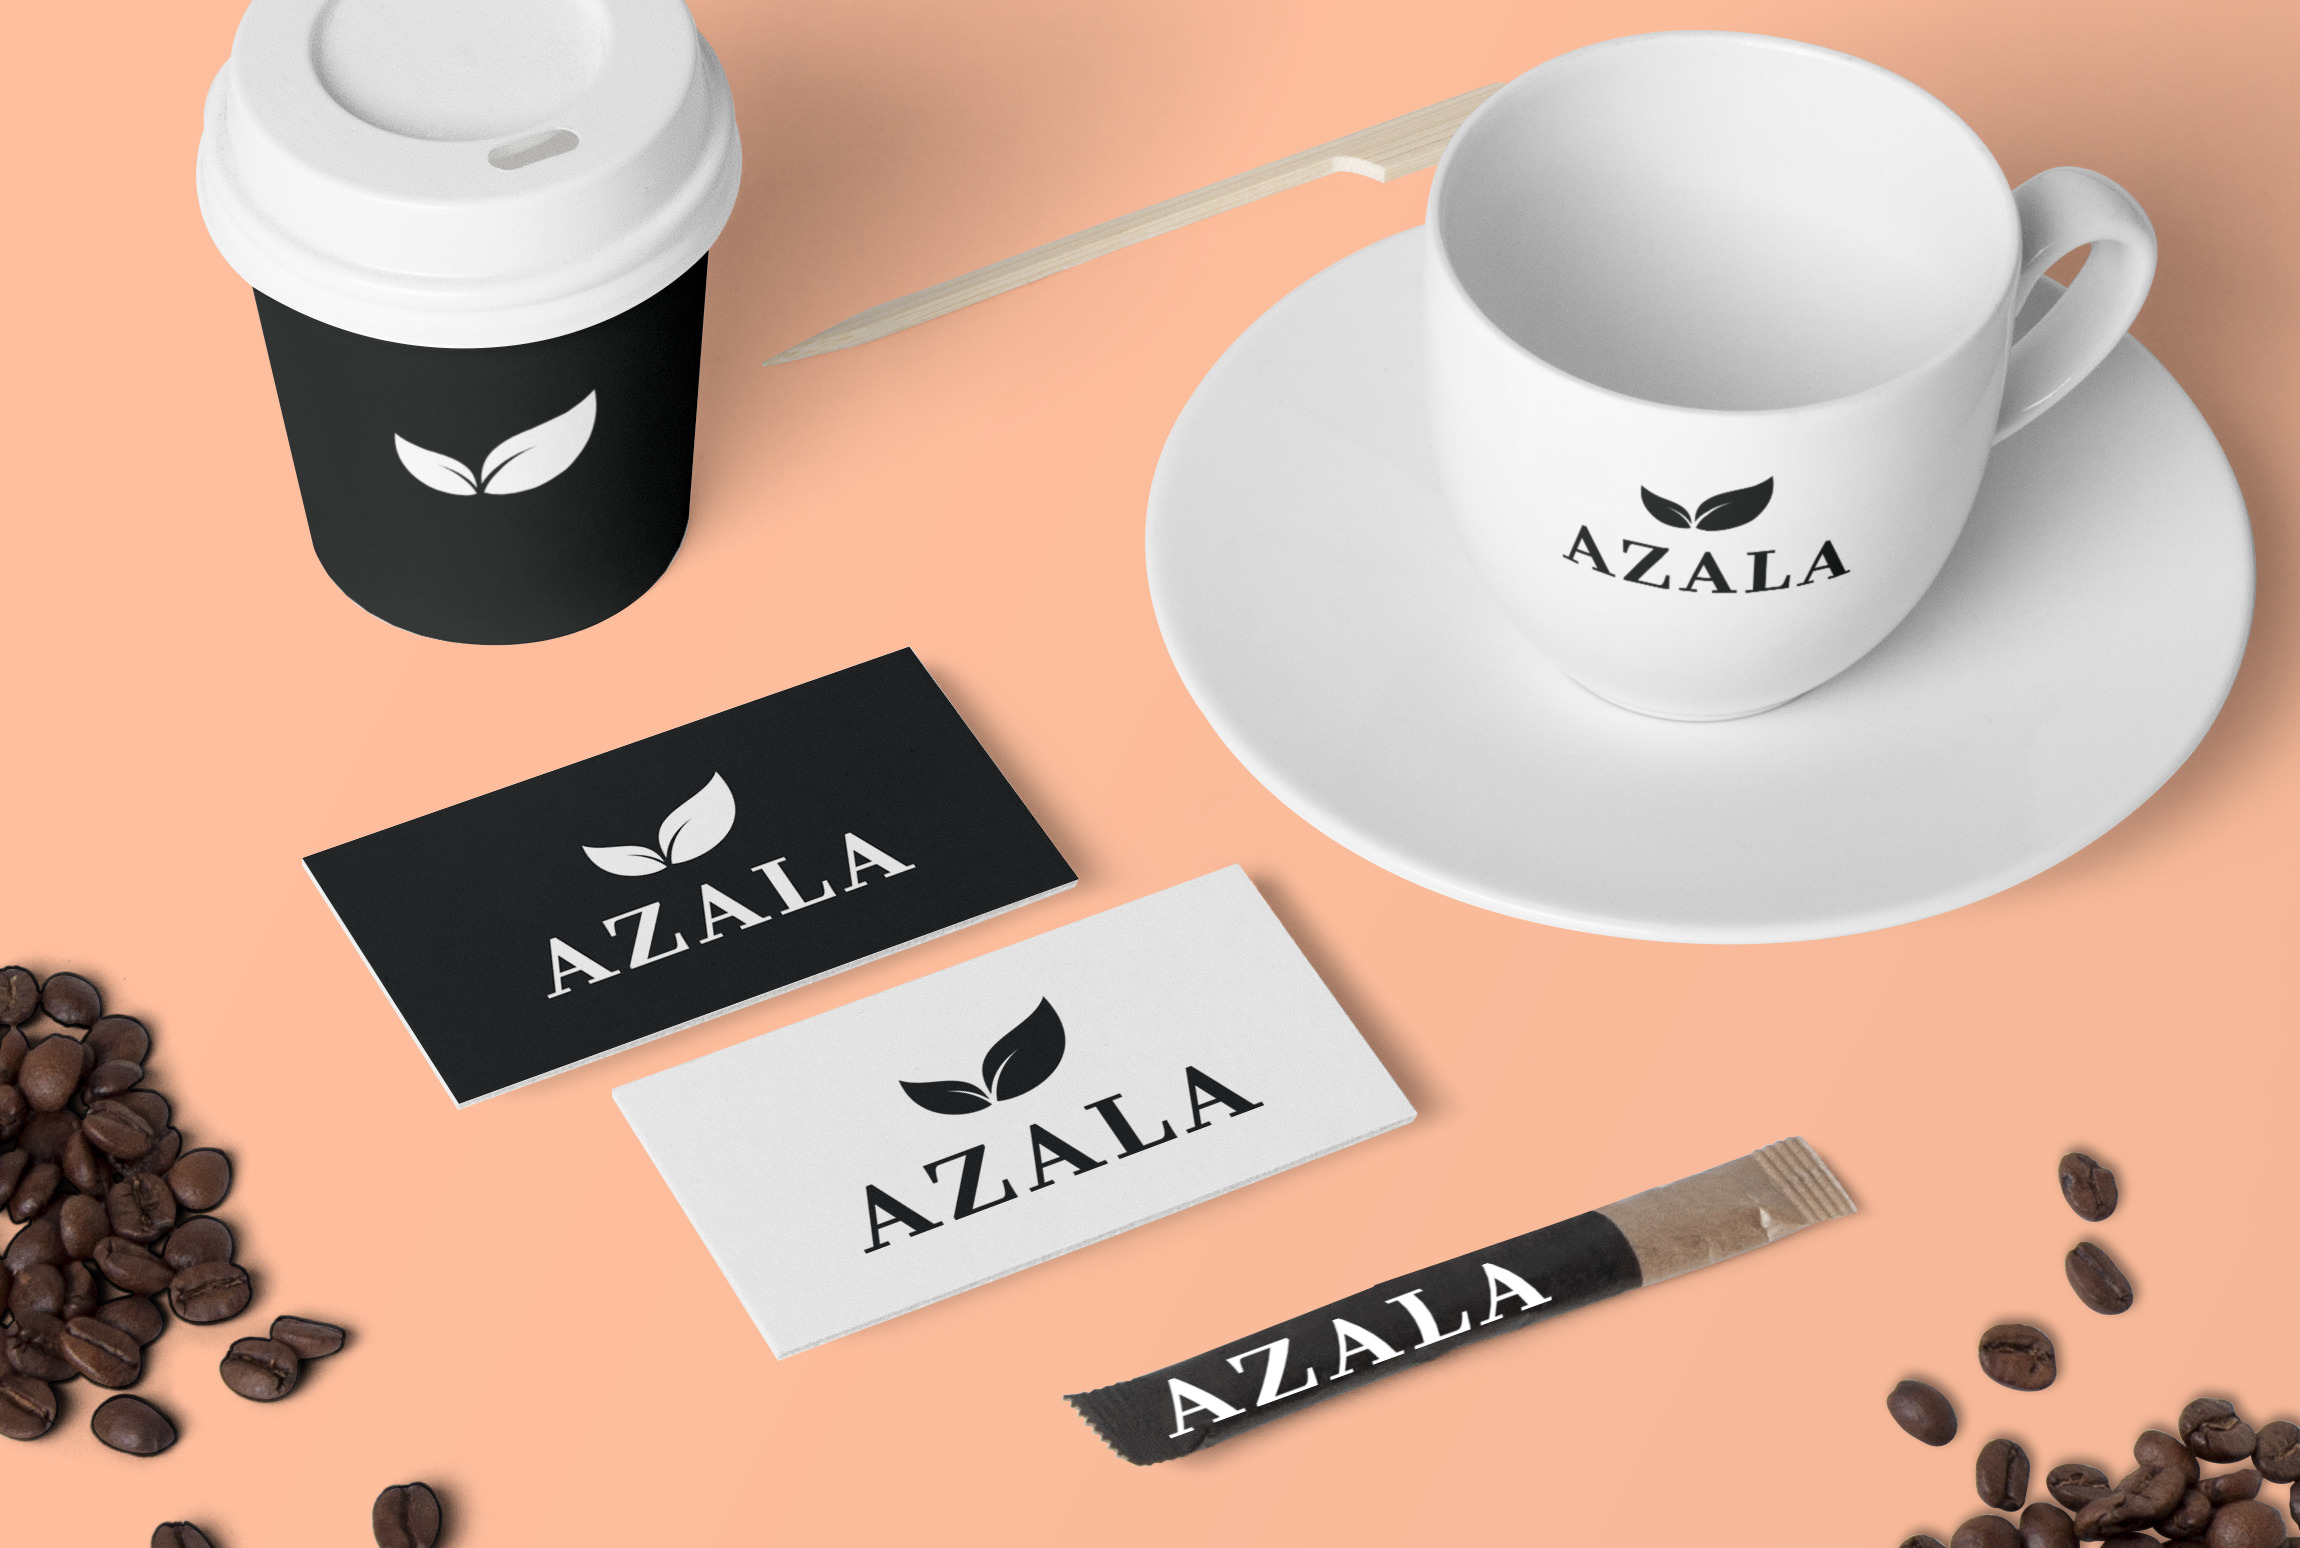 Logo printed on coffee cups and business cards